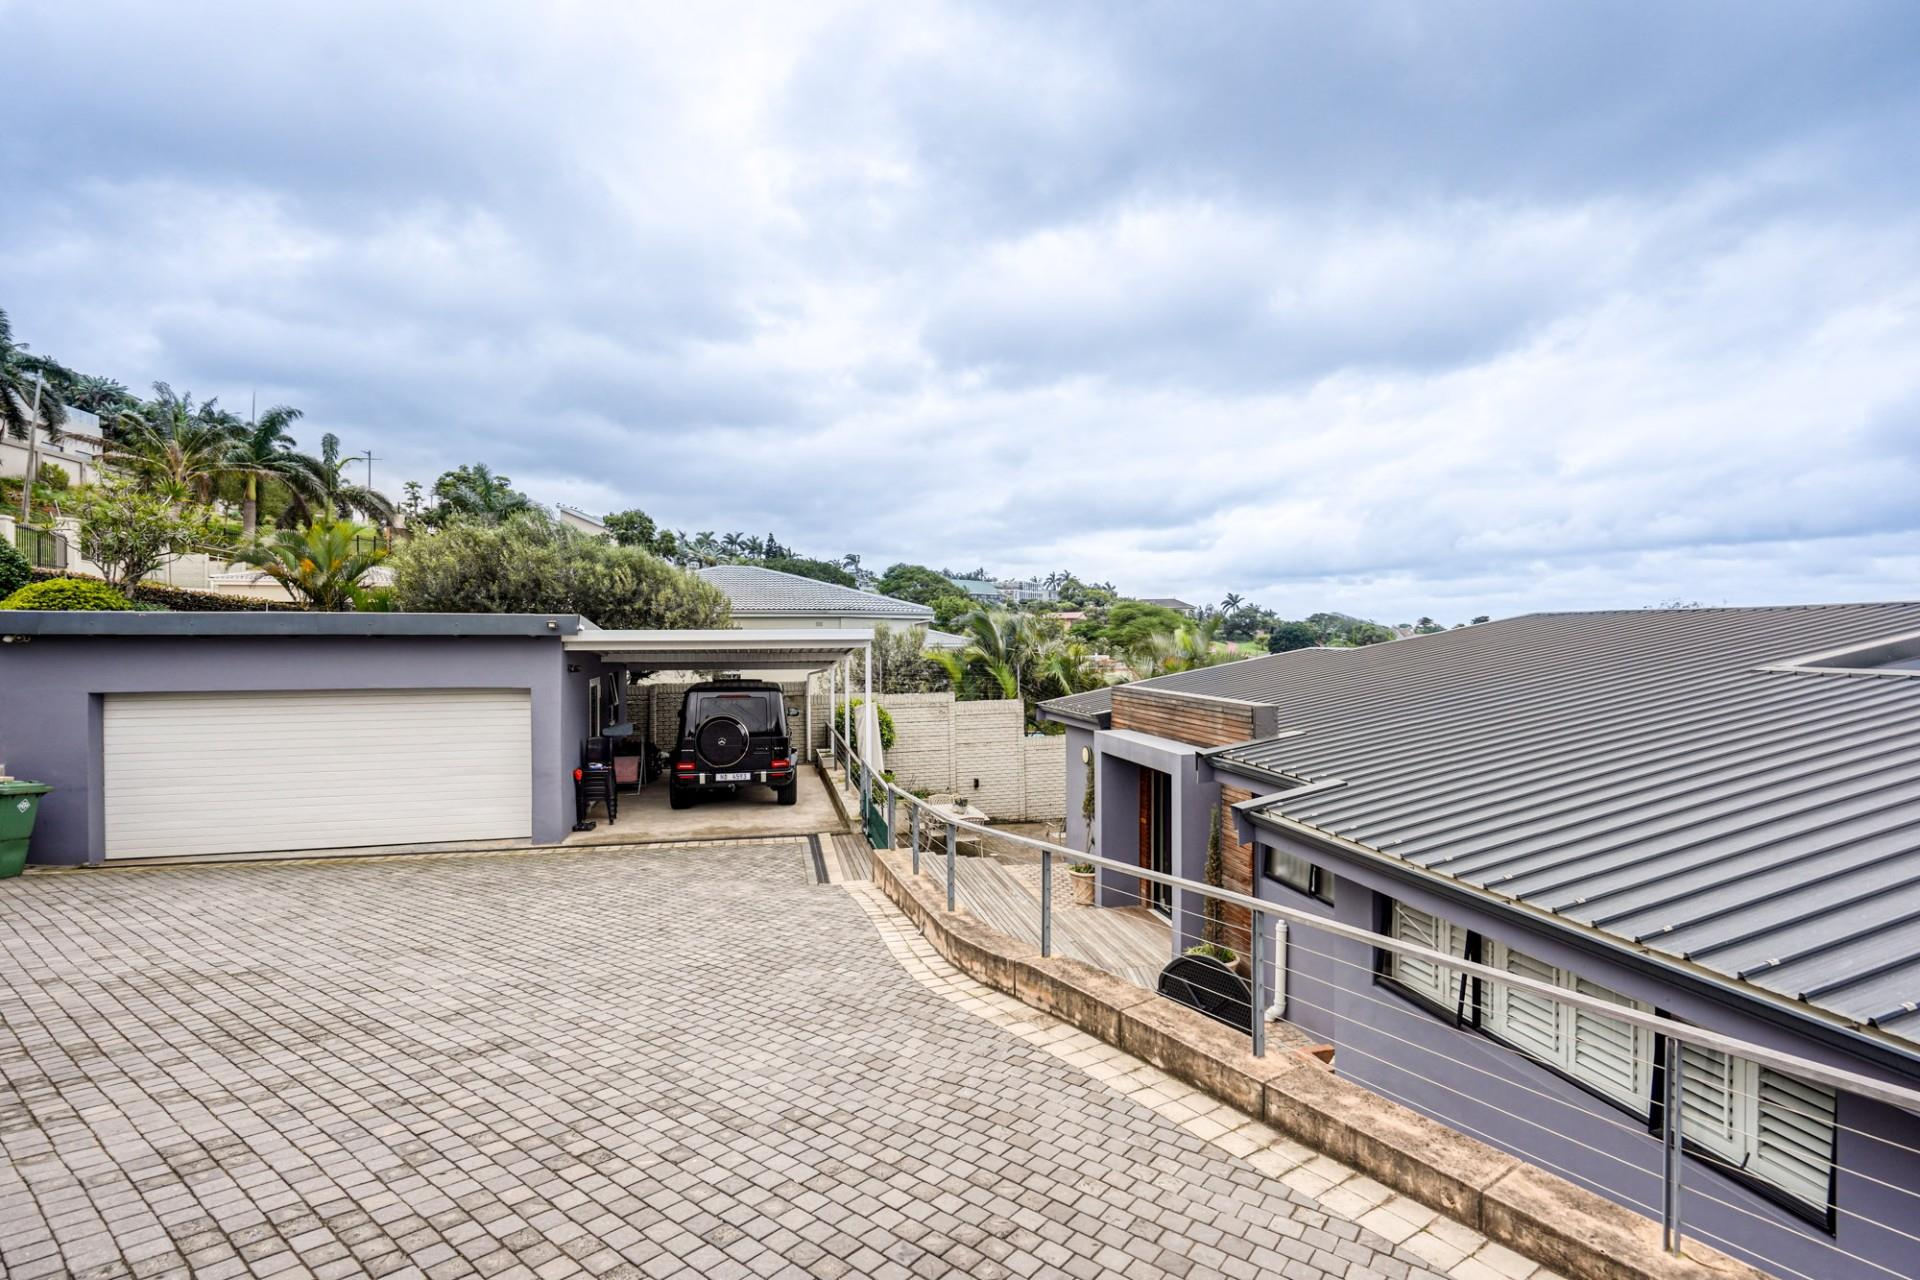 4 Bedroom House For Sale in Glenashley